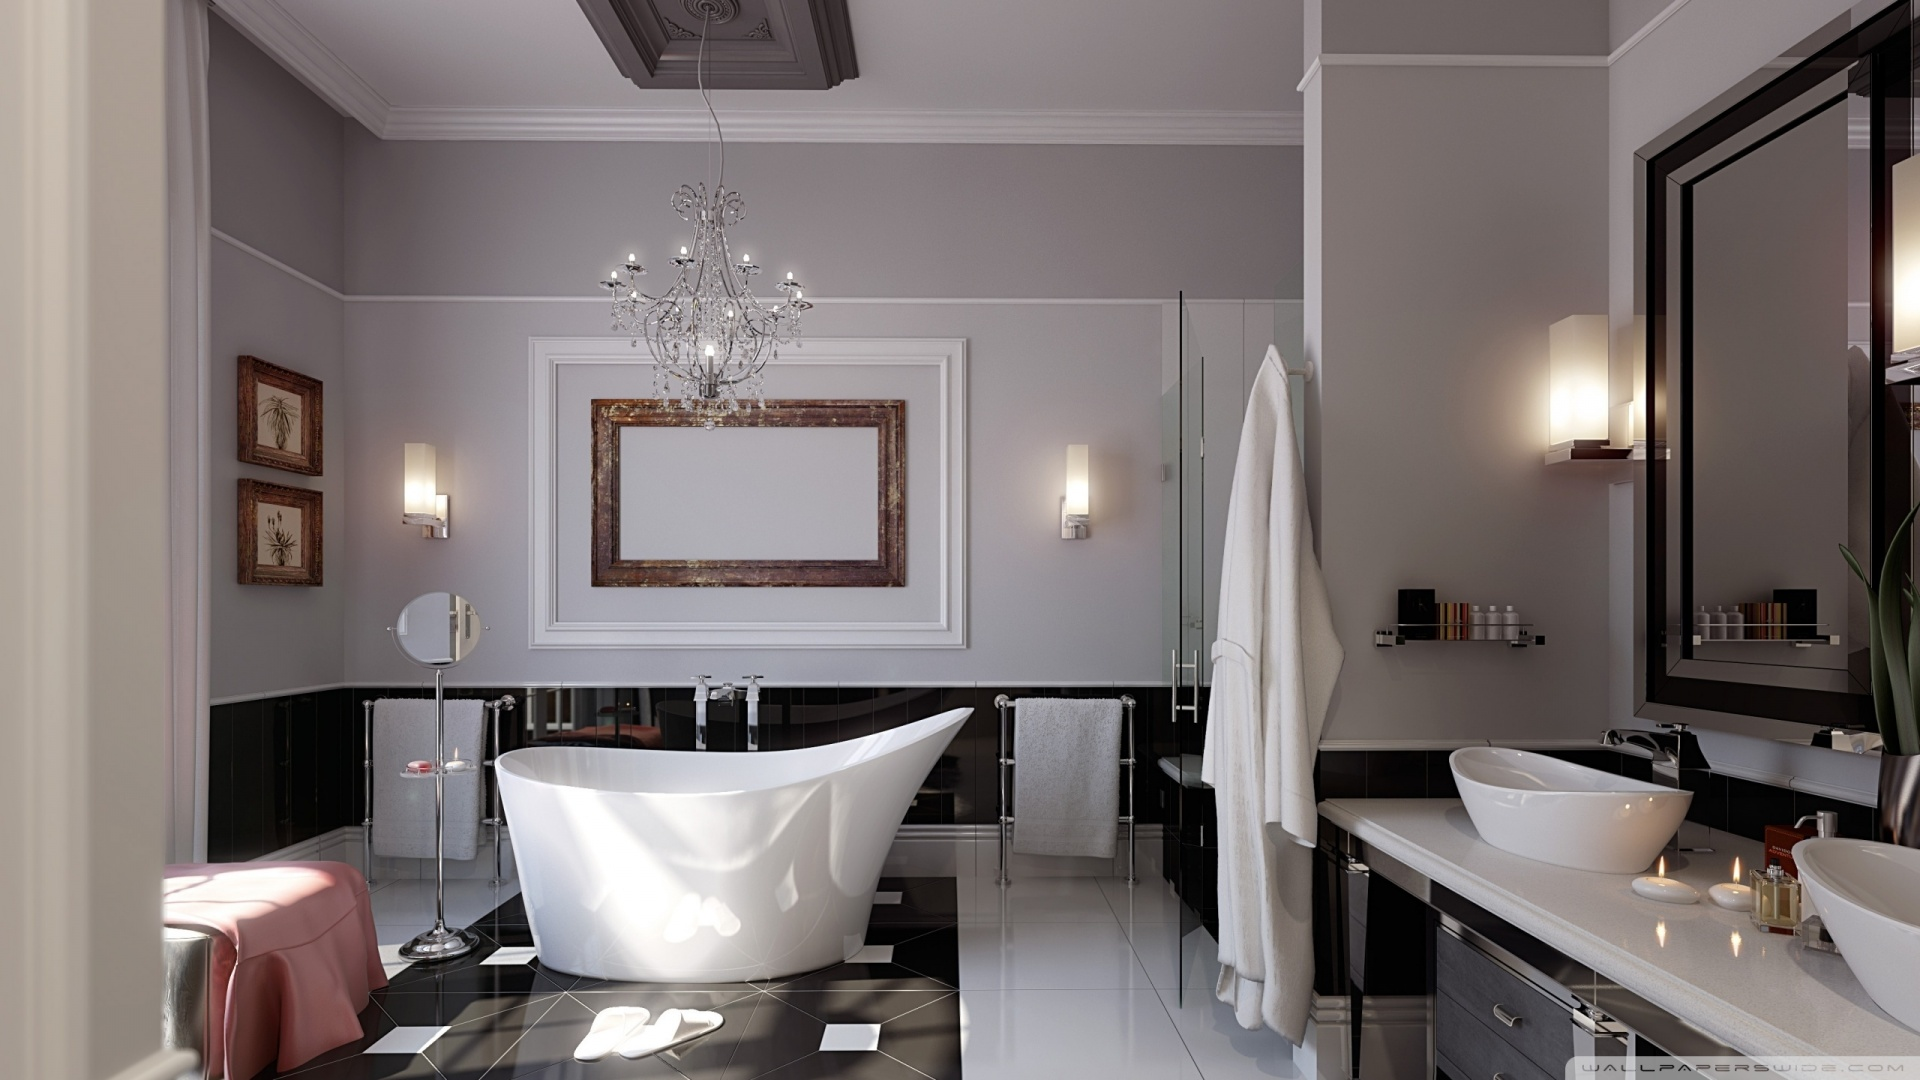 Bathroom Home Interior Design How To Achieve The Look Of Timeless Design Freshome